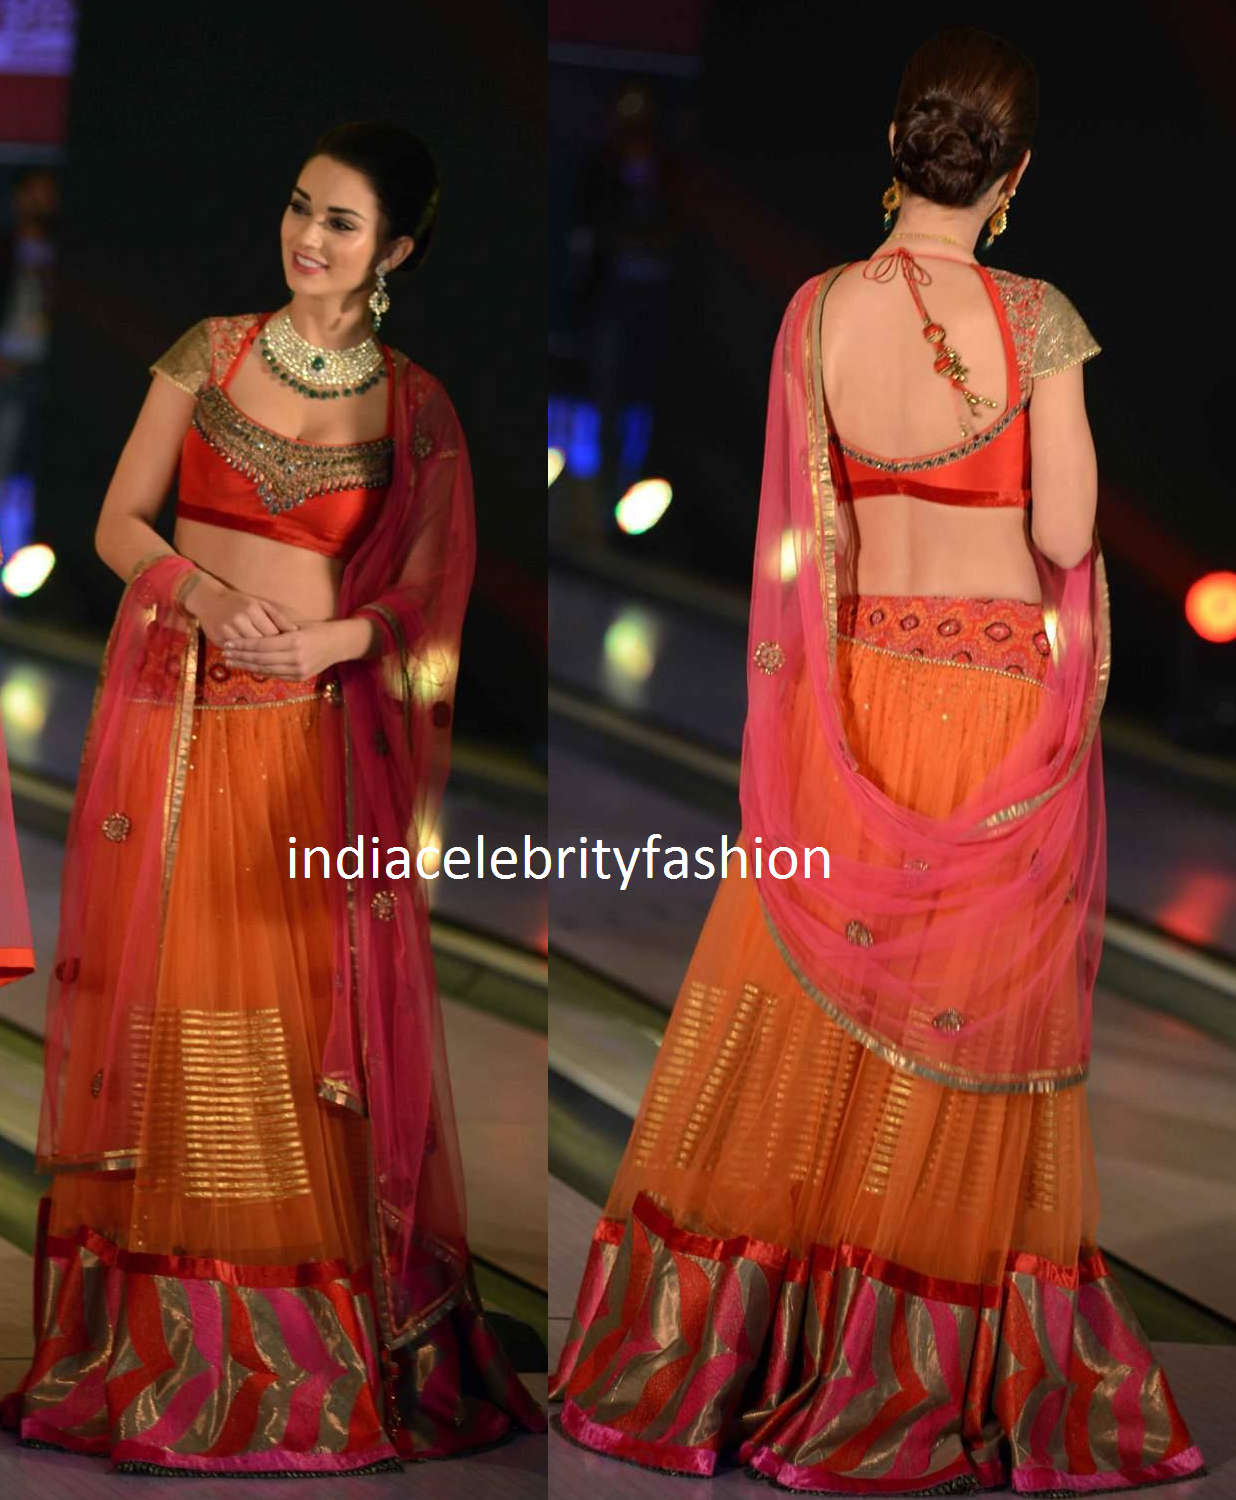 Amy Jackson in Bridal Lehenga at SIB Fashion show